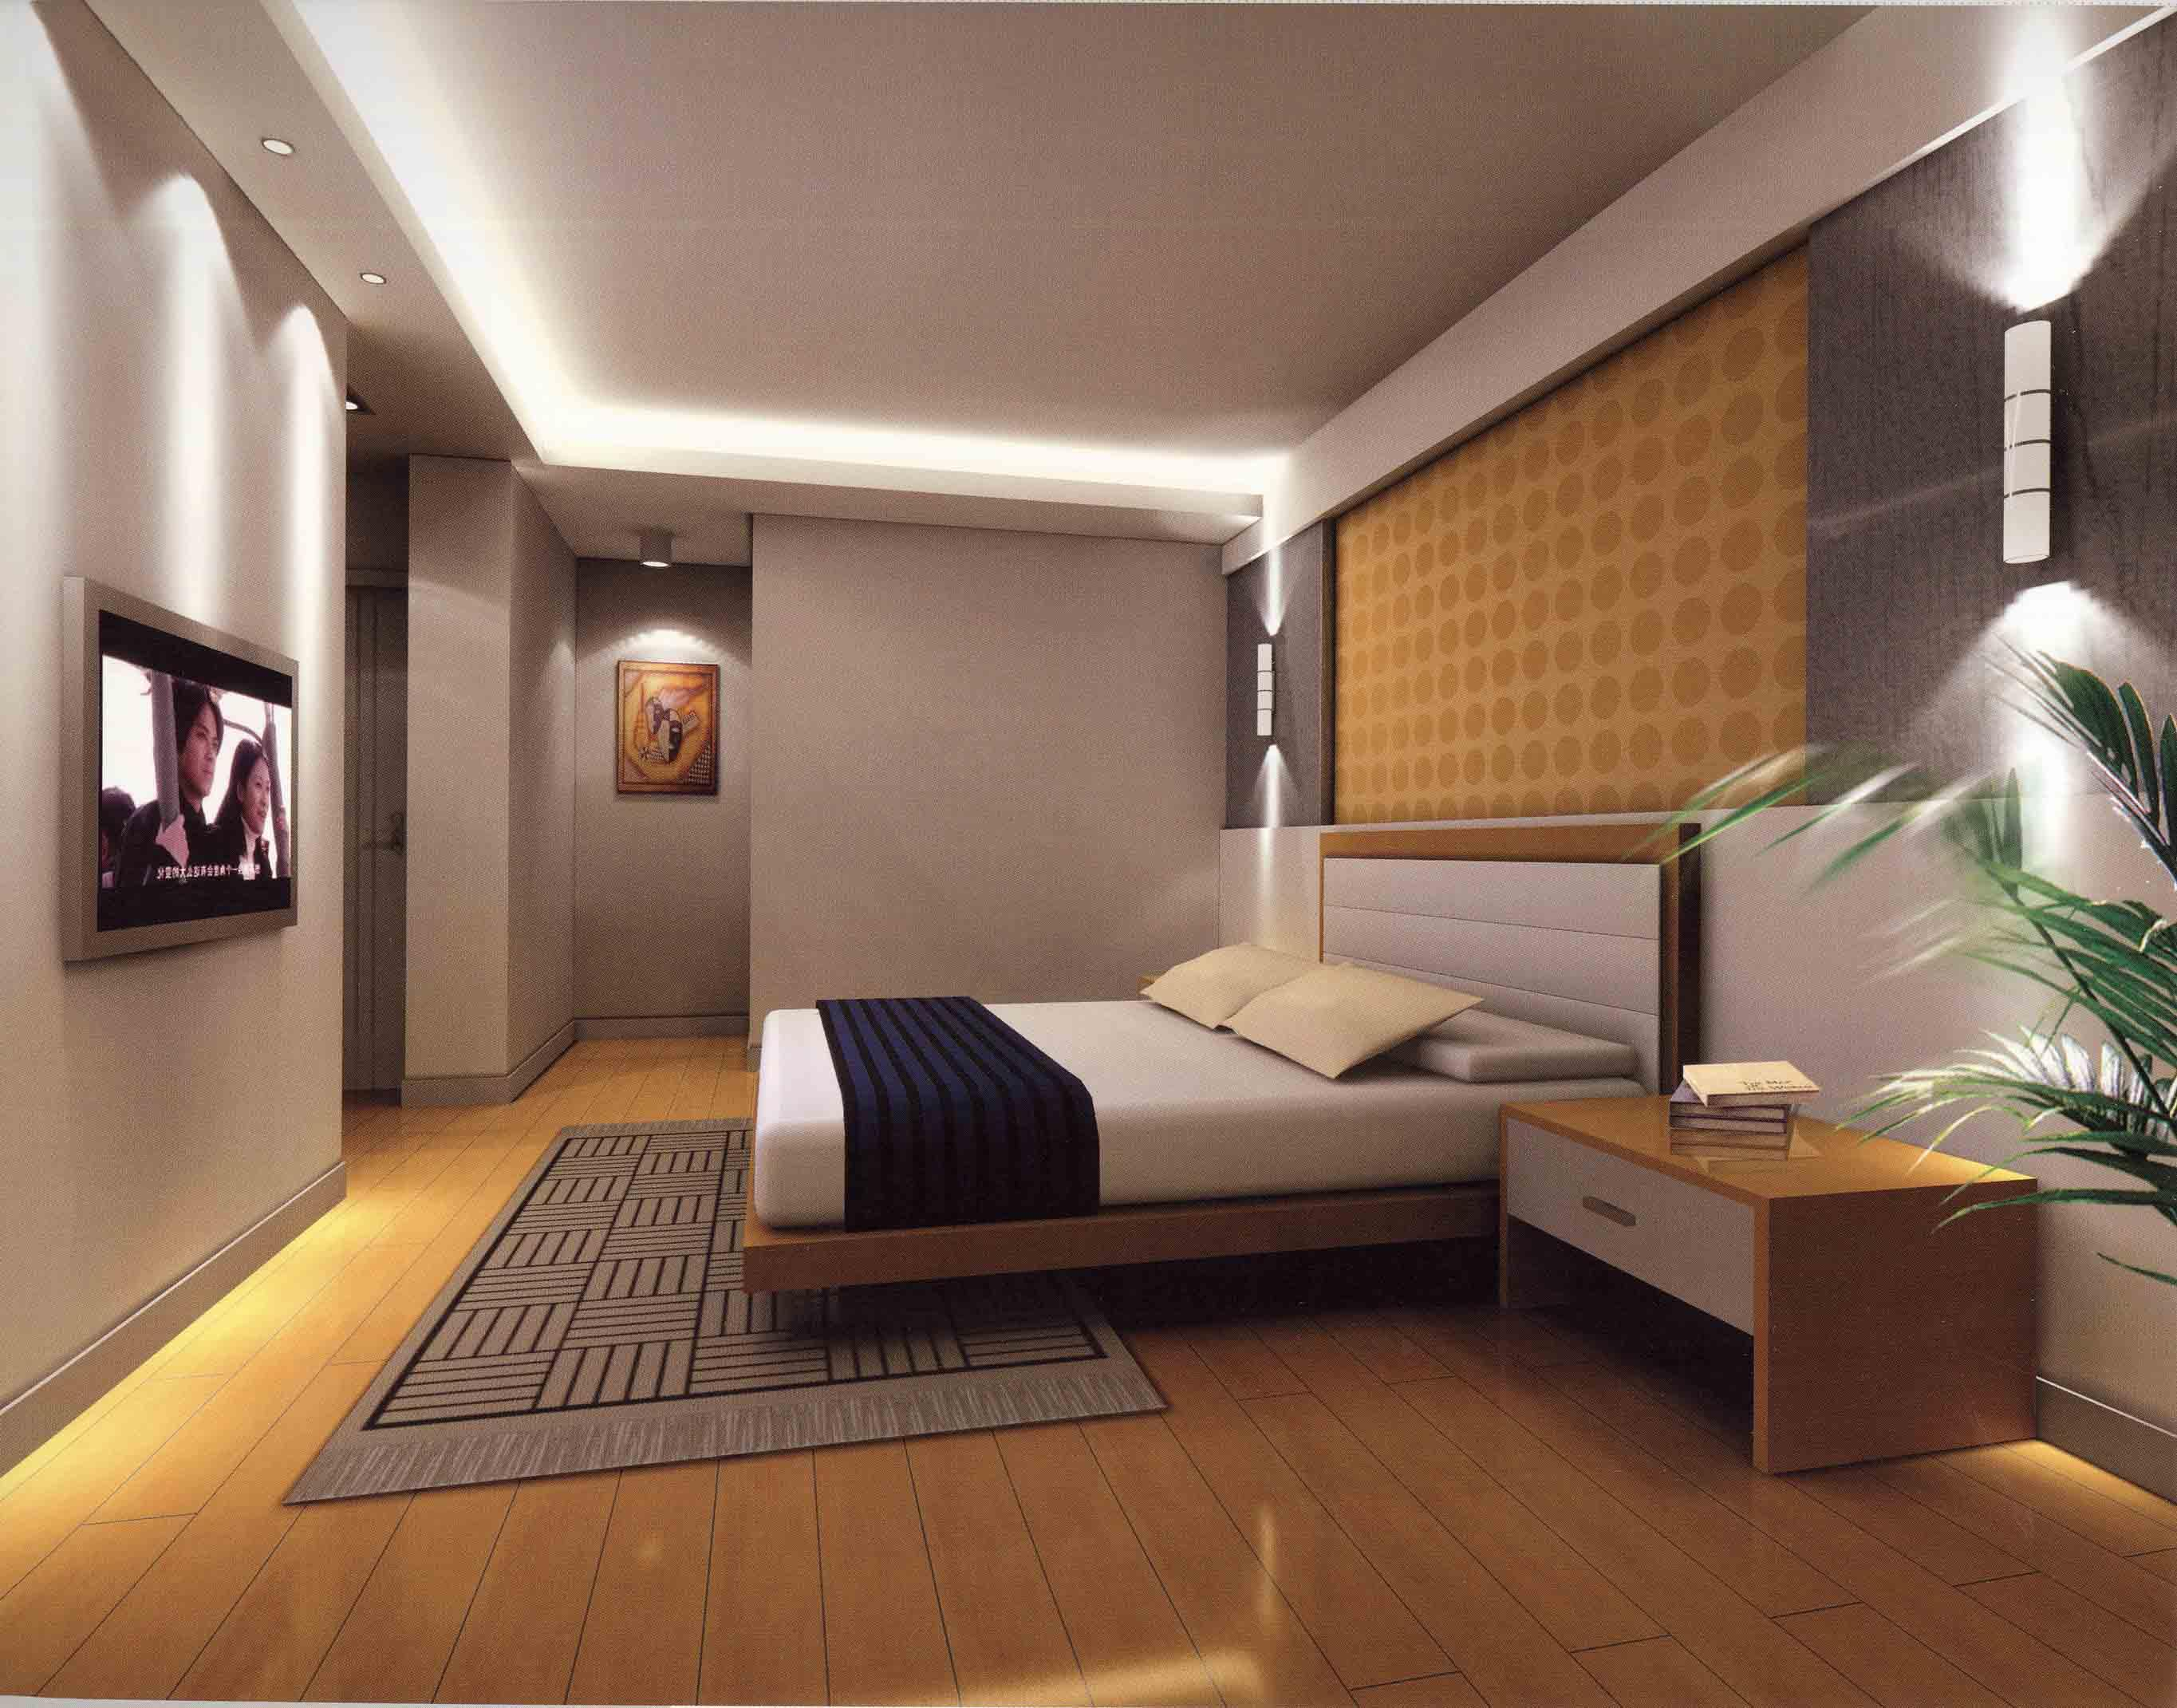 25 cool bedroom designs collection for New master bedroom ideas